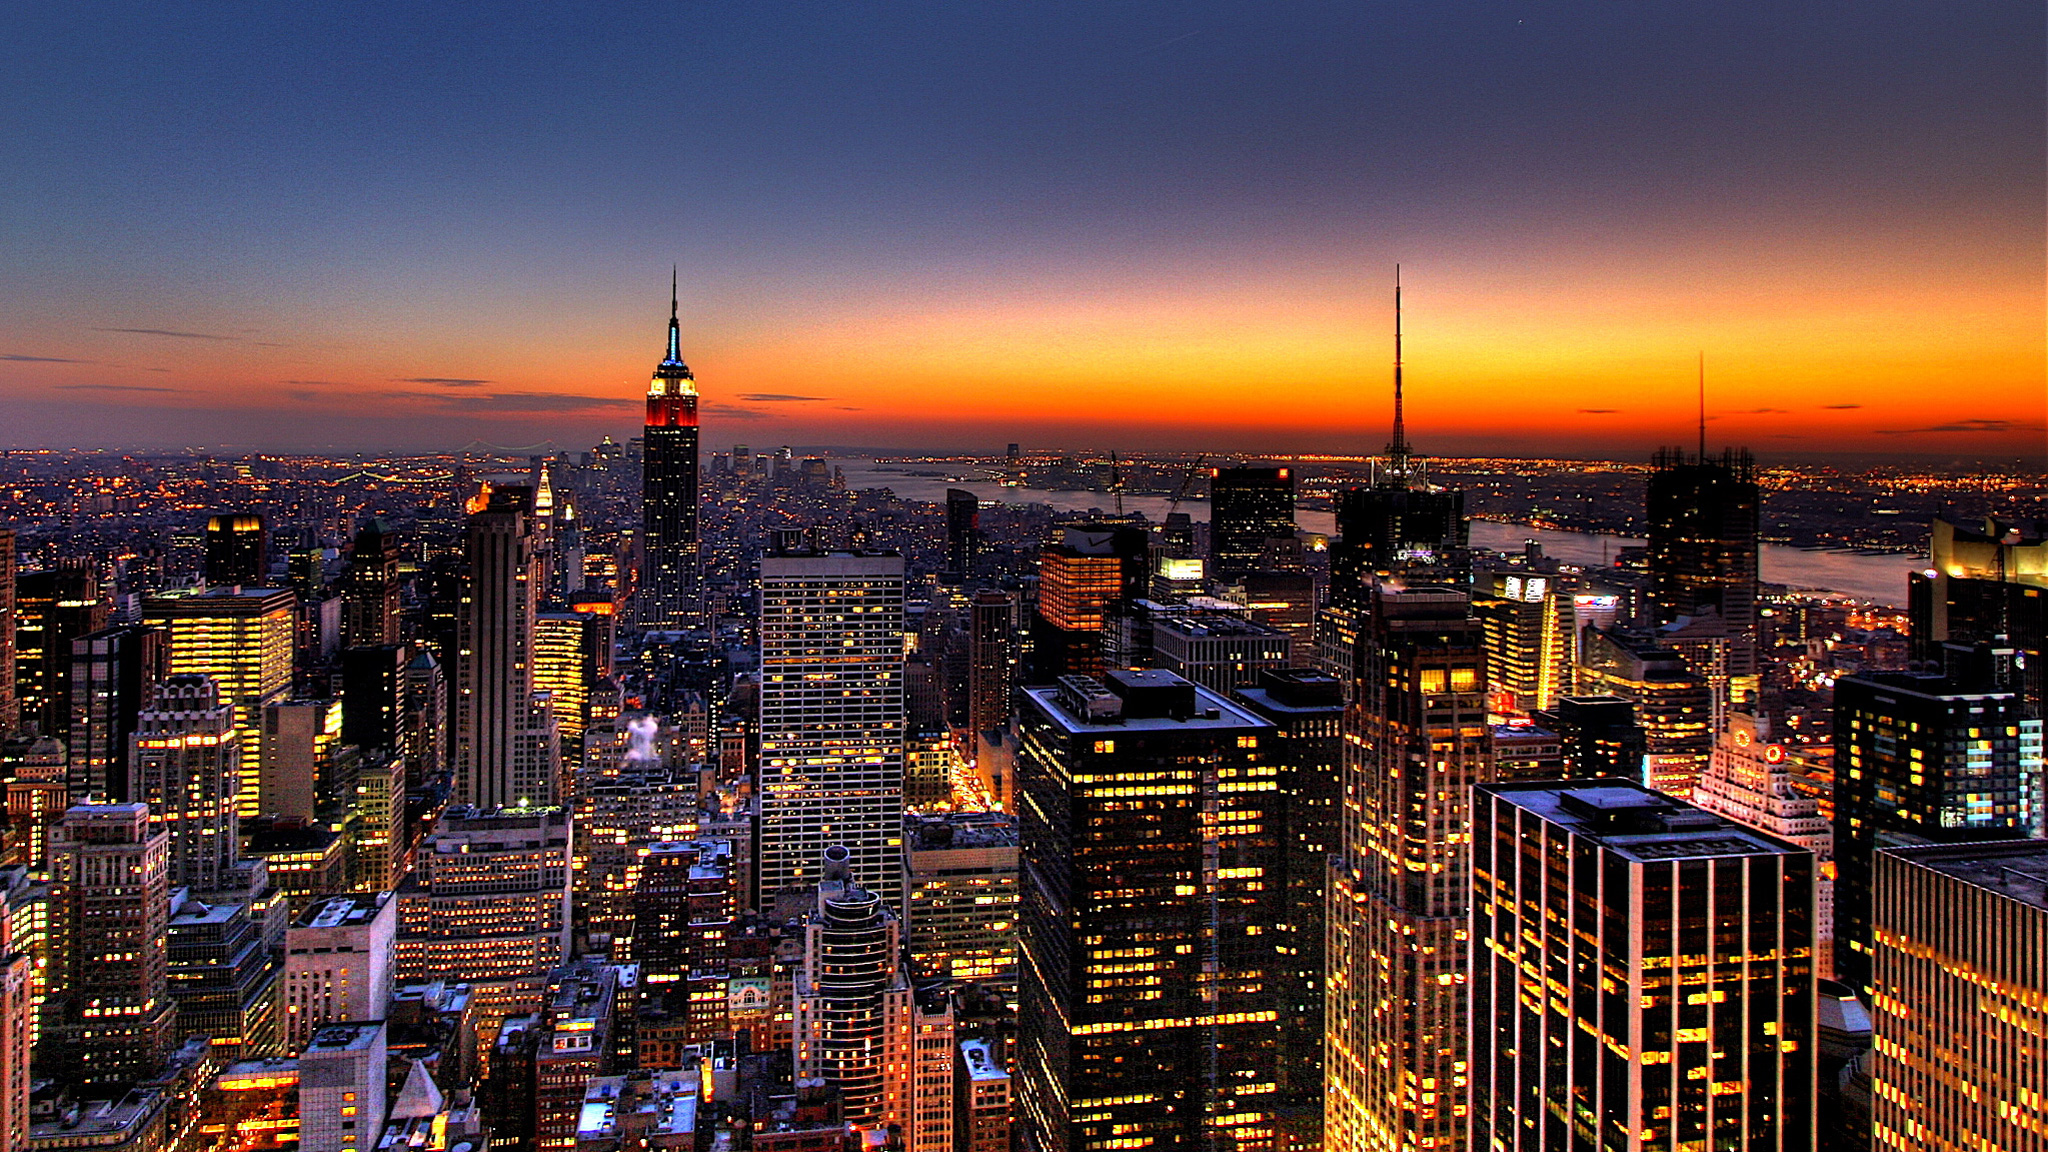 City night wallpaper hd wallpapersafari for New york city beautiful